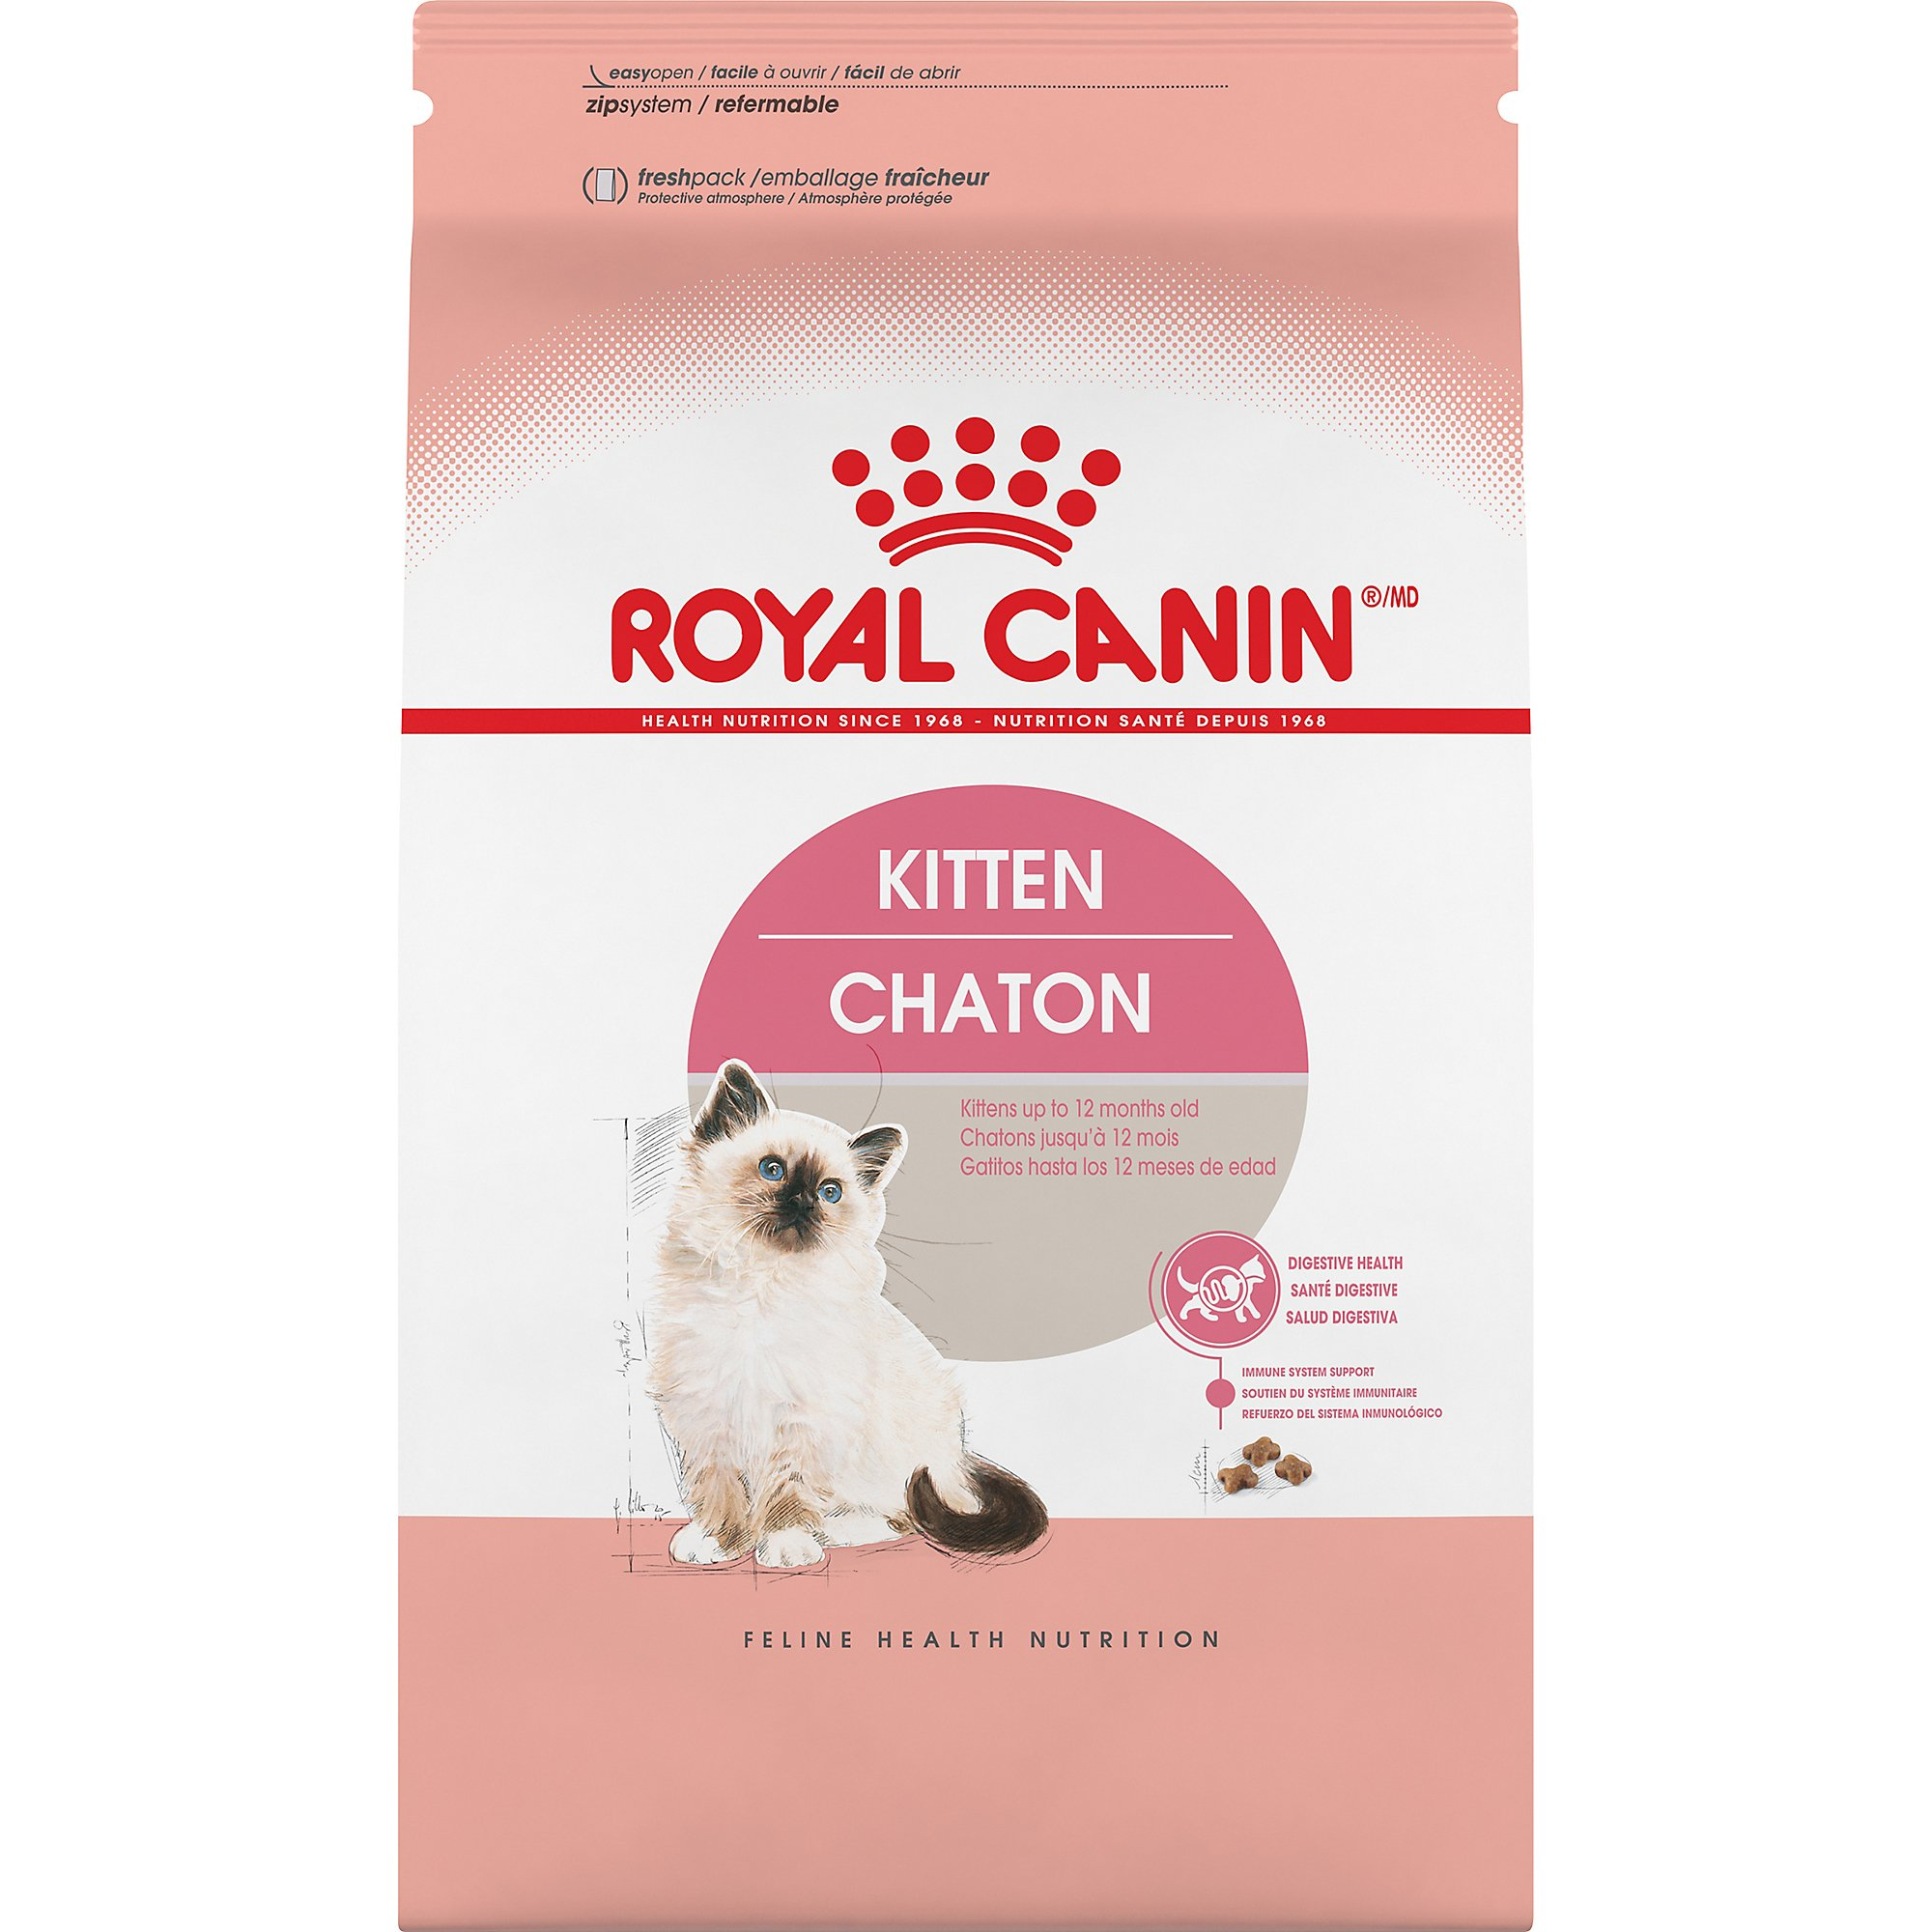 Royal Canin Feline Health Nutrition Dry Food for Young Kittens, 15 Pound Bag